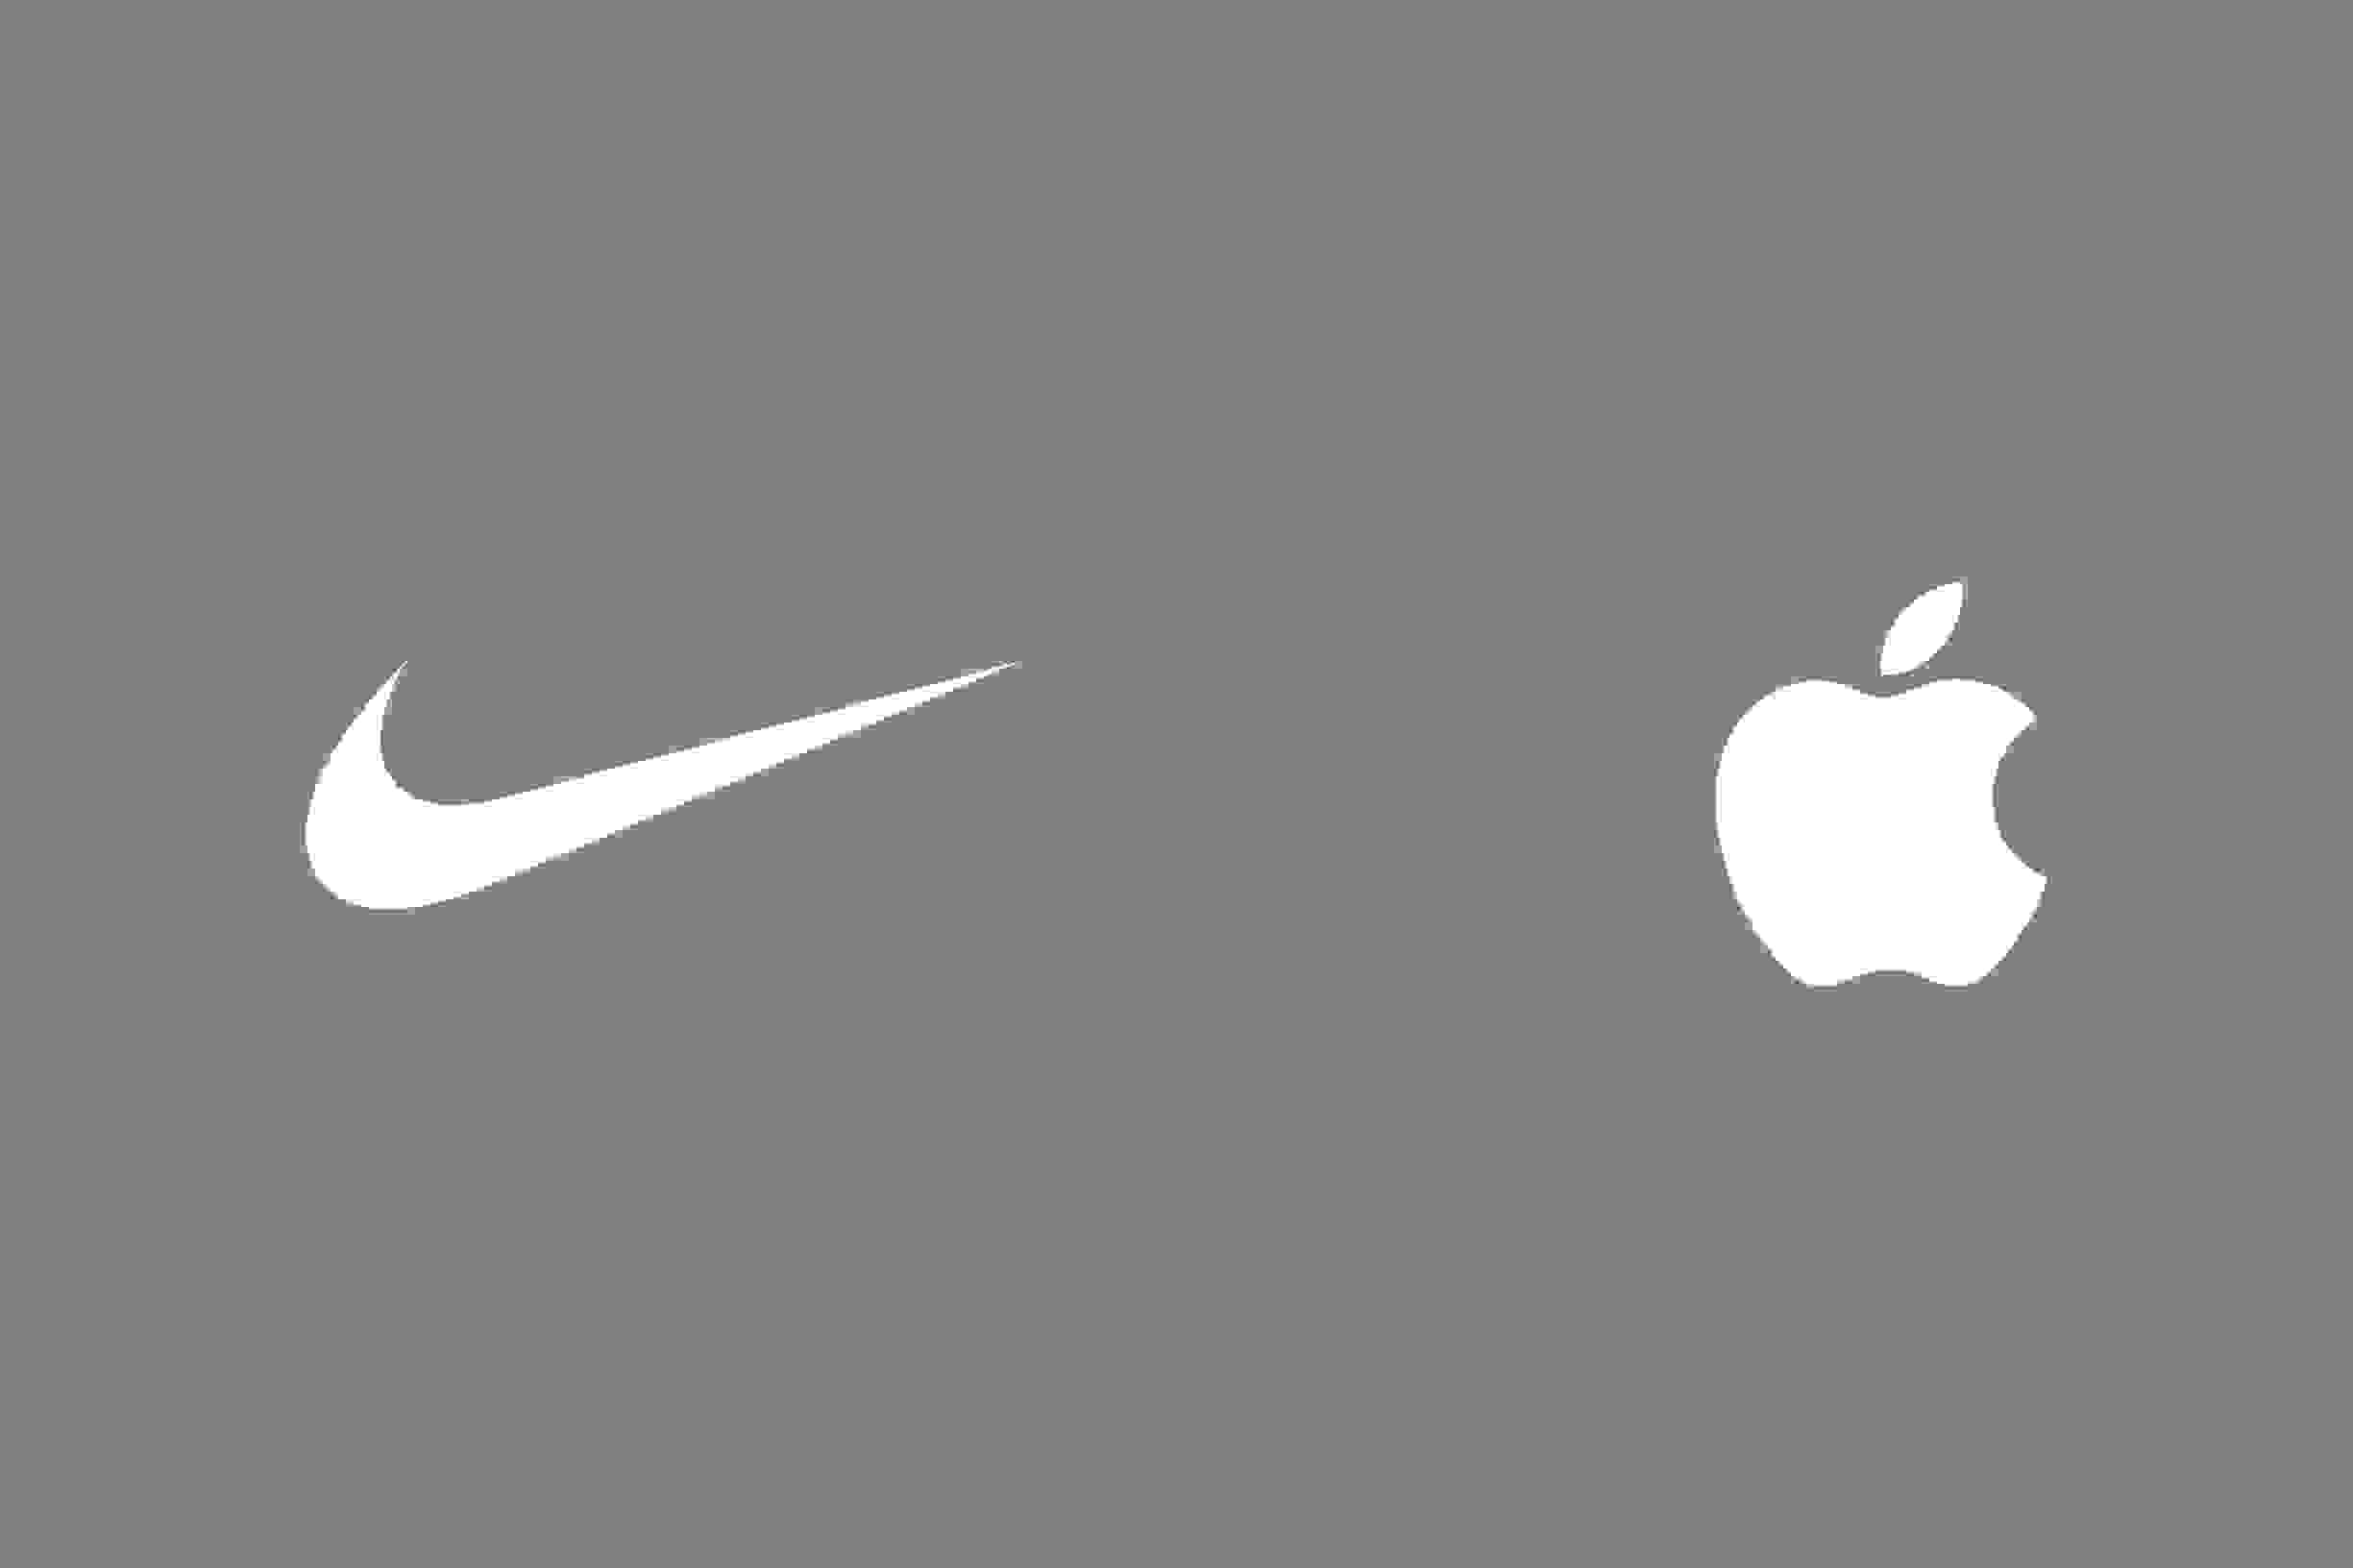 Nike and Apple logo side by side